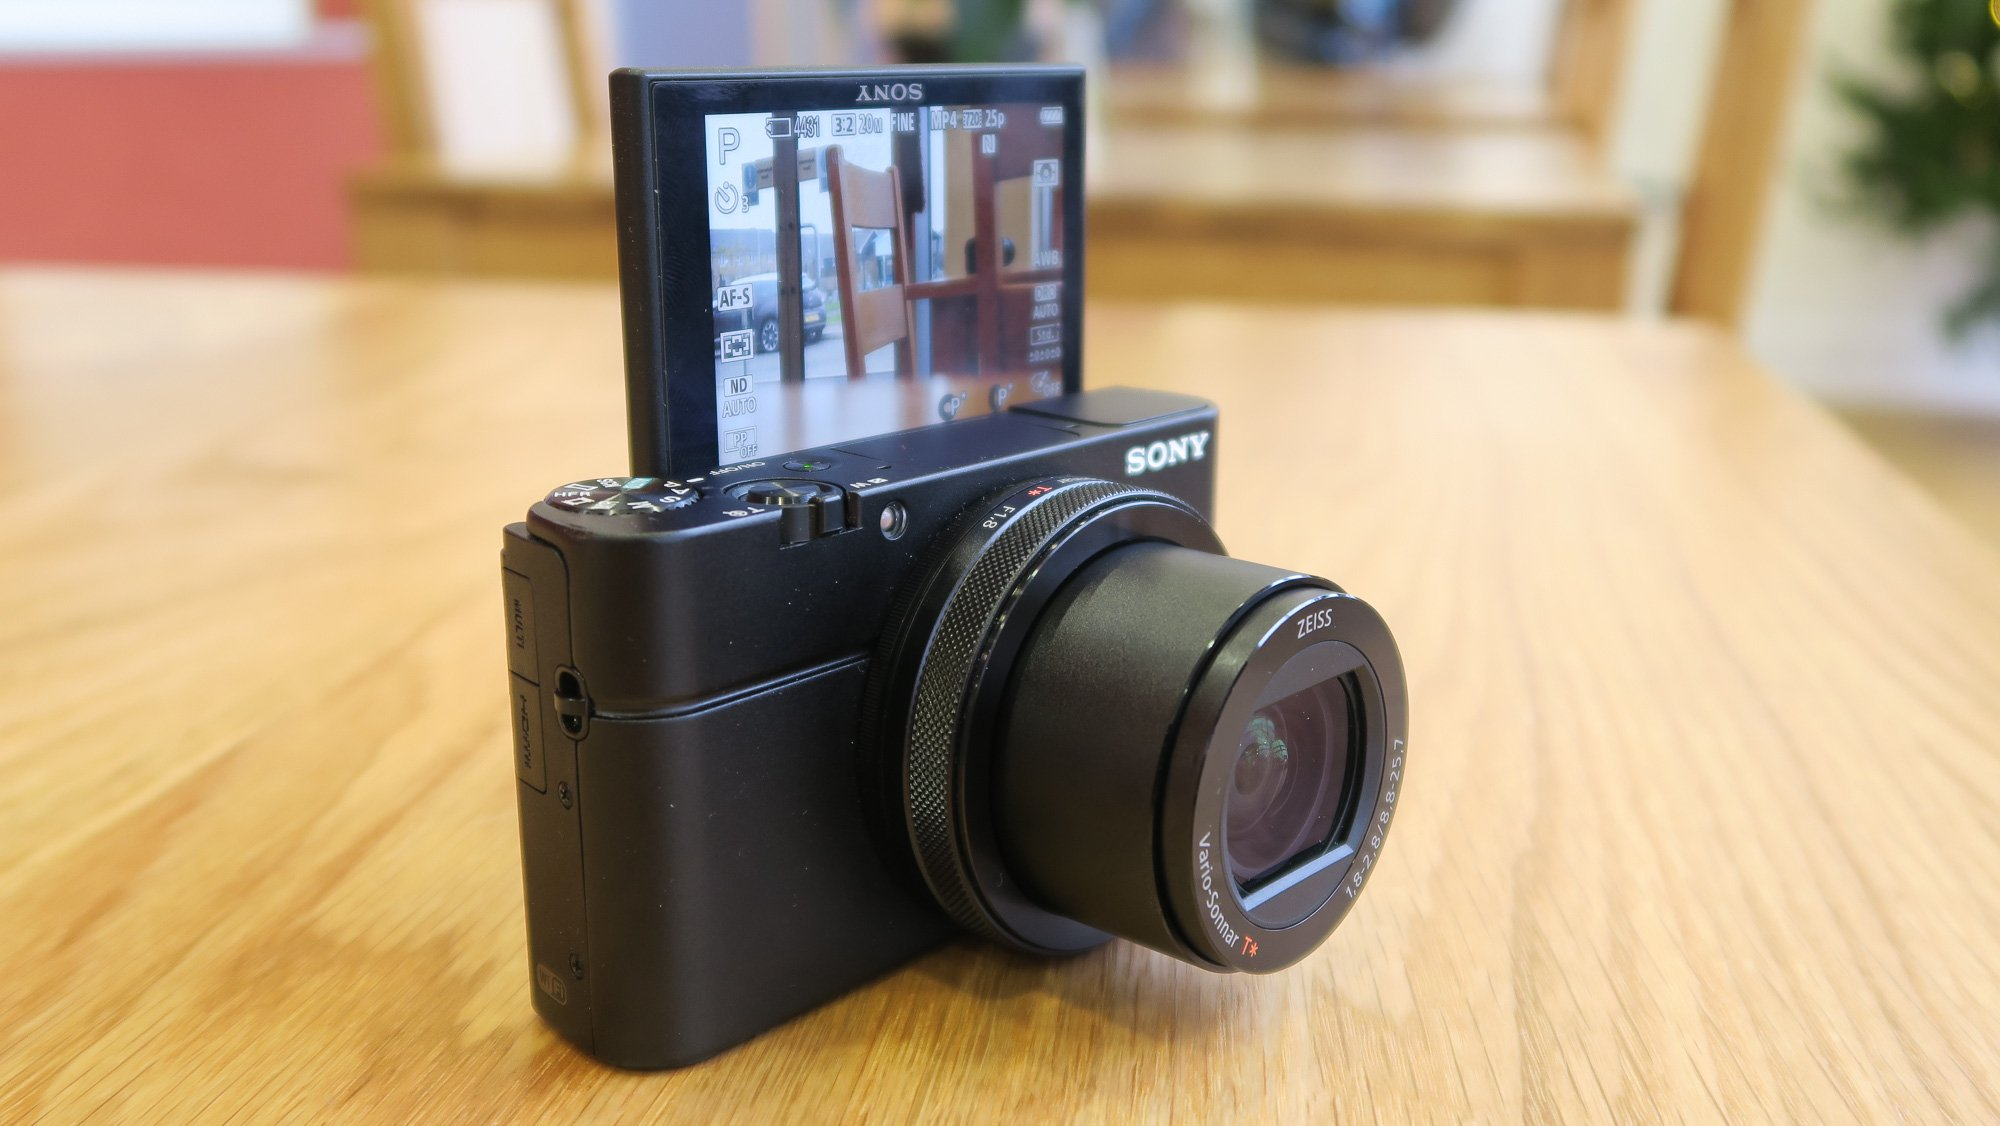 Sony RX100 IV review: A powerhouse compact camera now available for